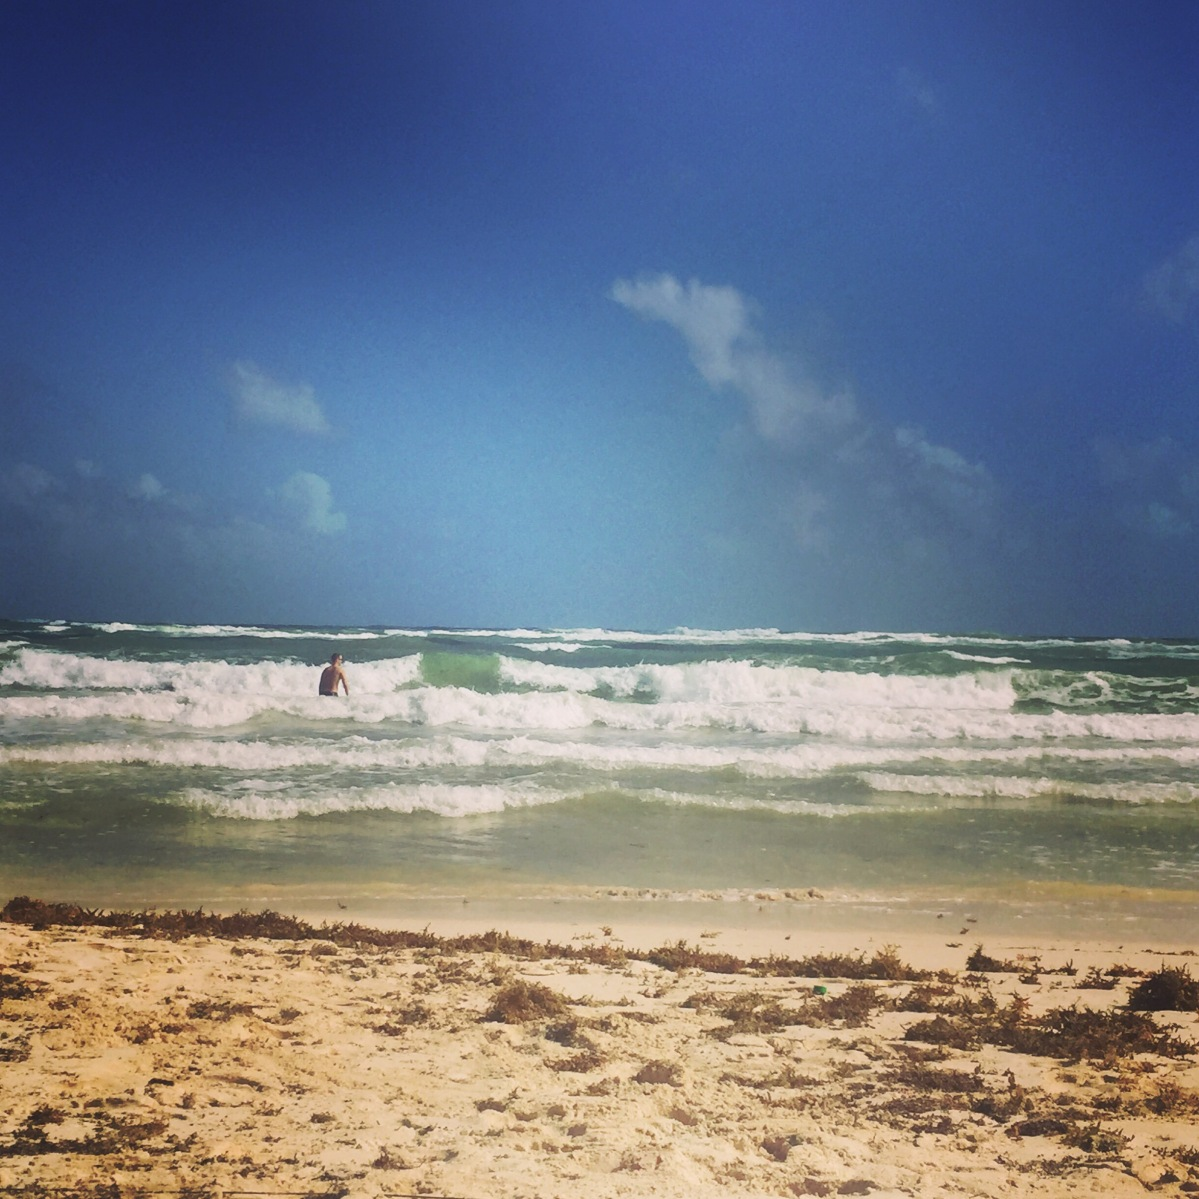 10 days in Tulum, Mexico